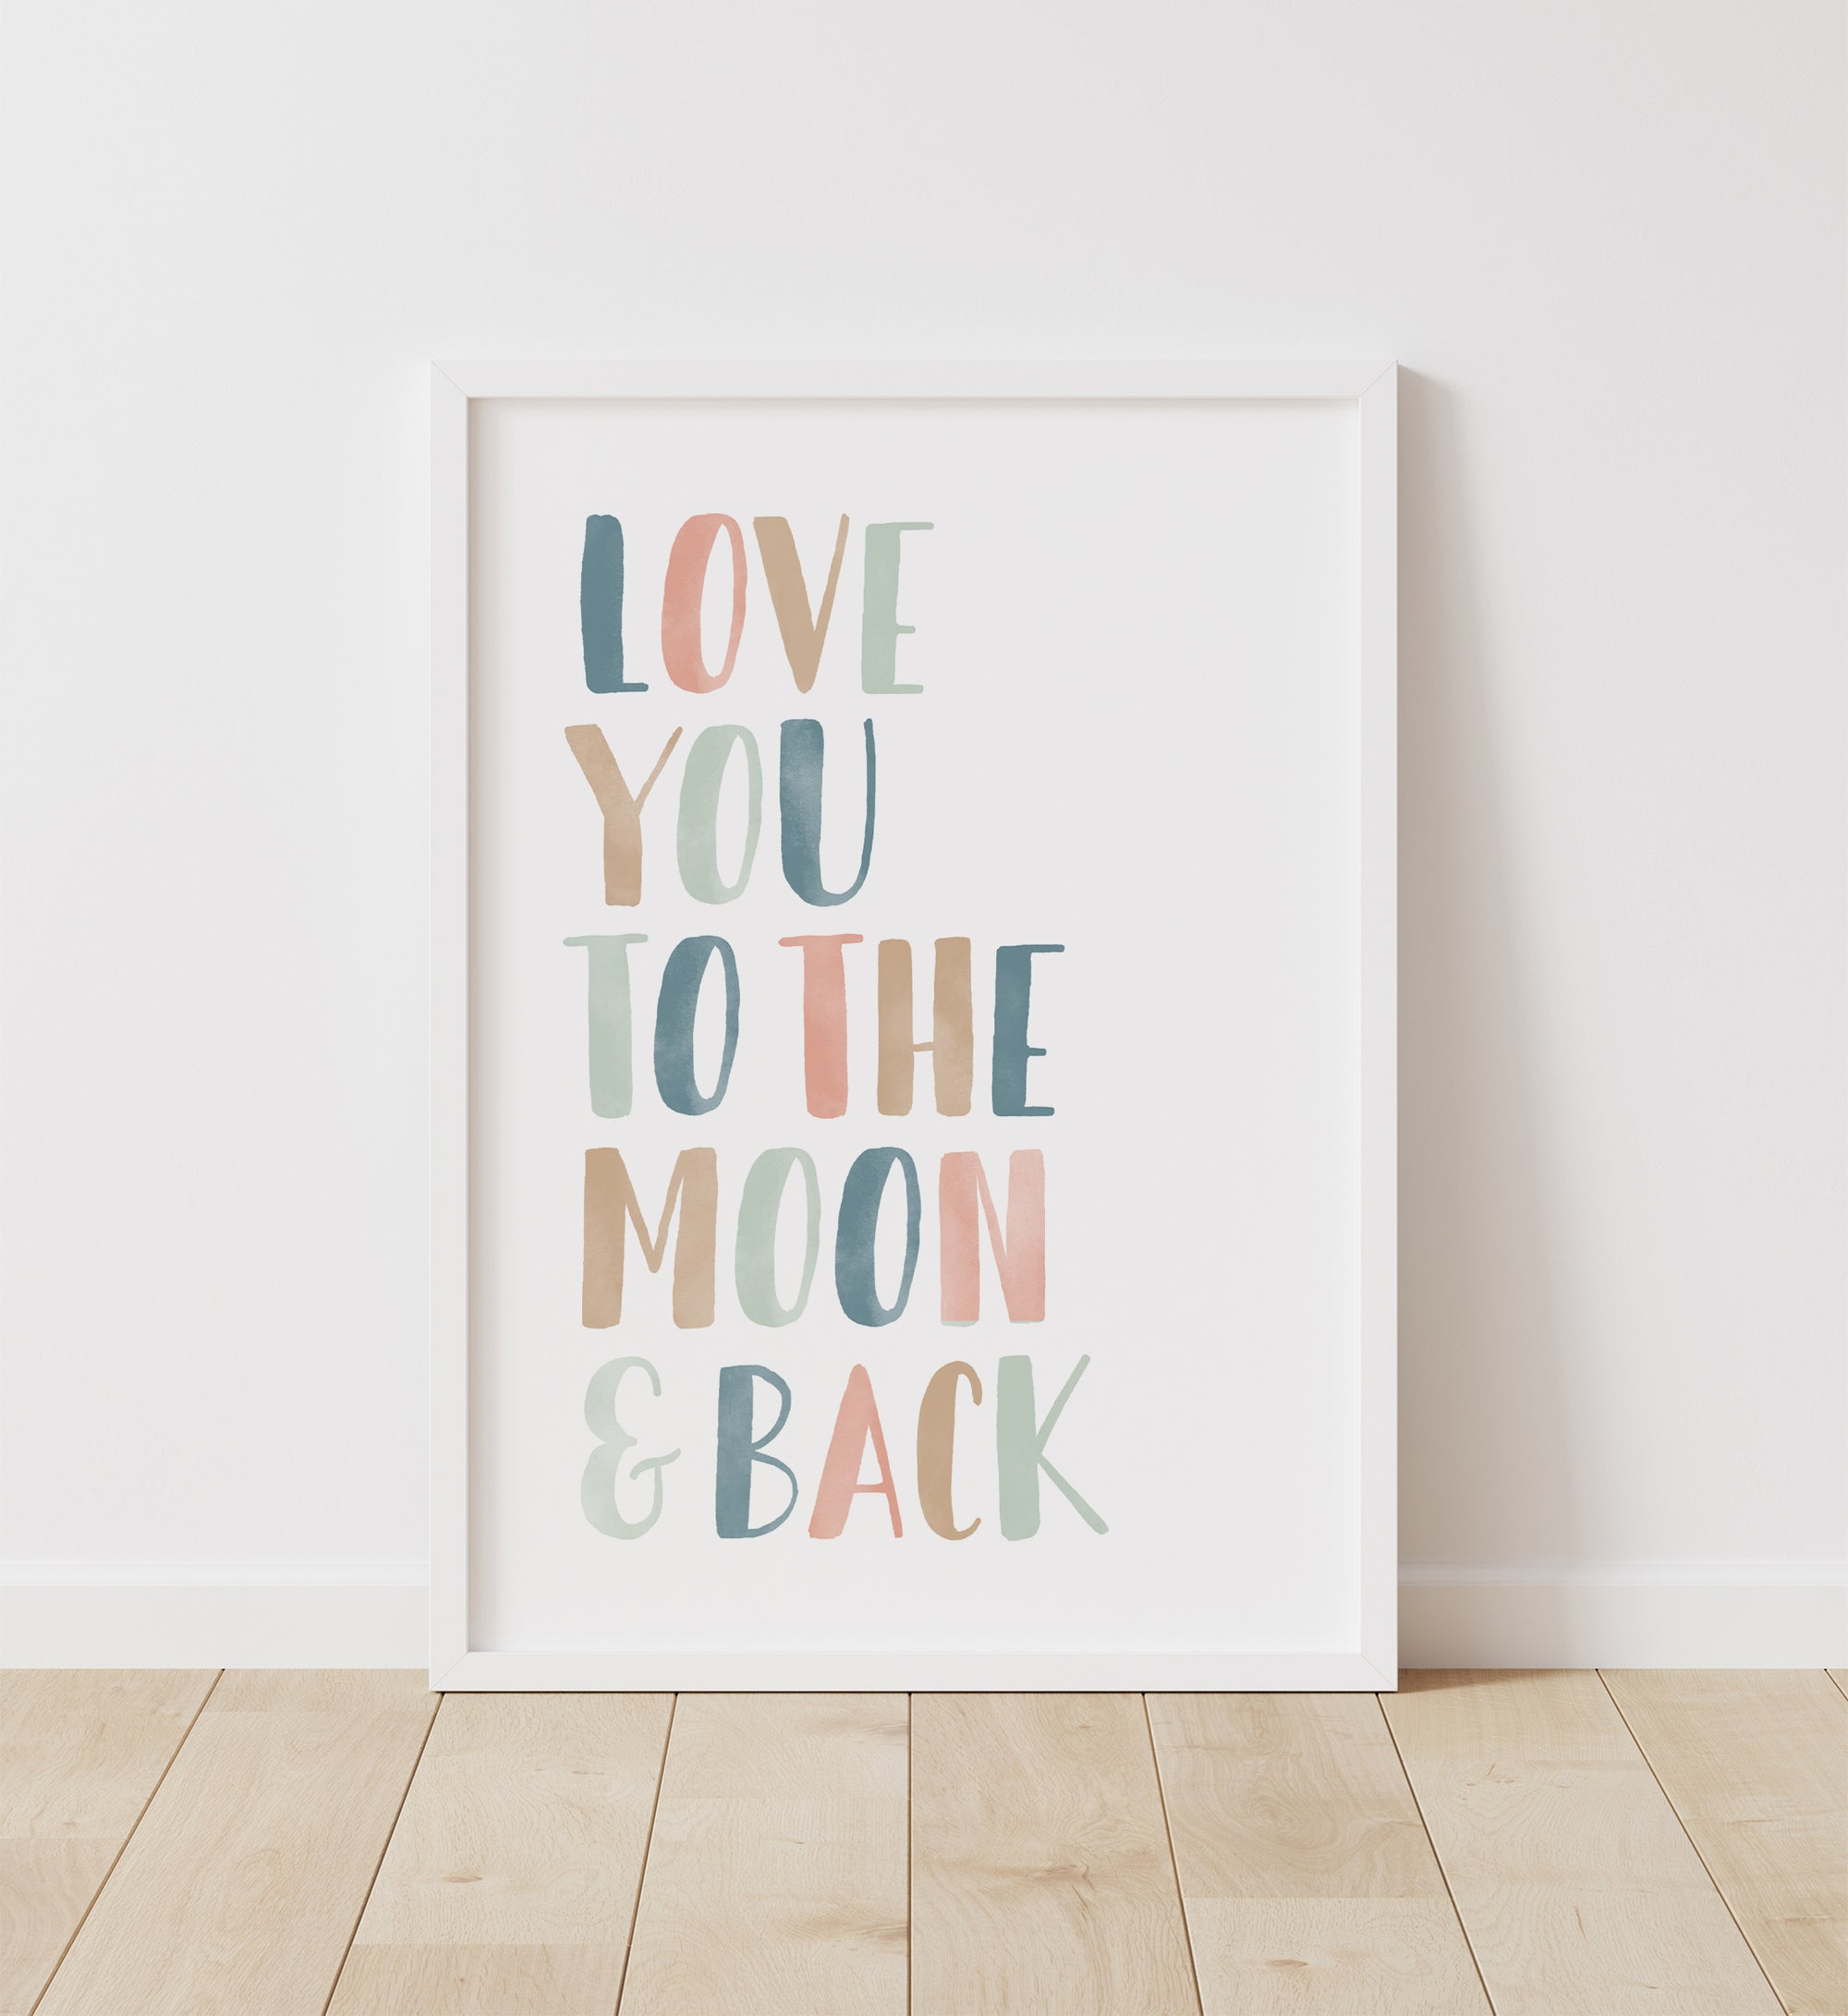 Love You to the Moon and Back - Muted